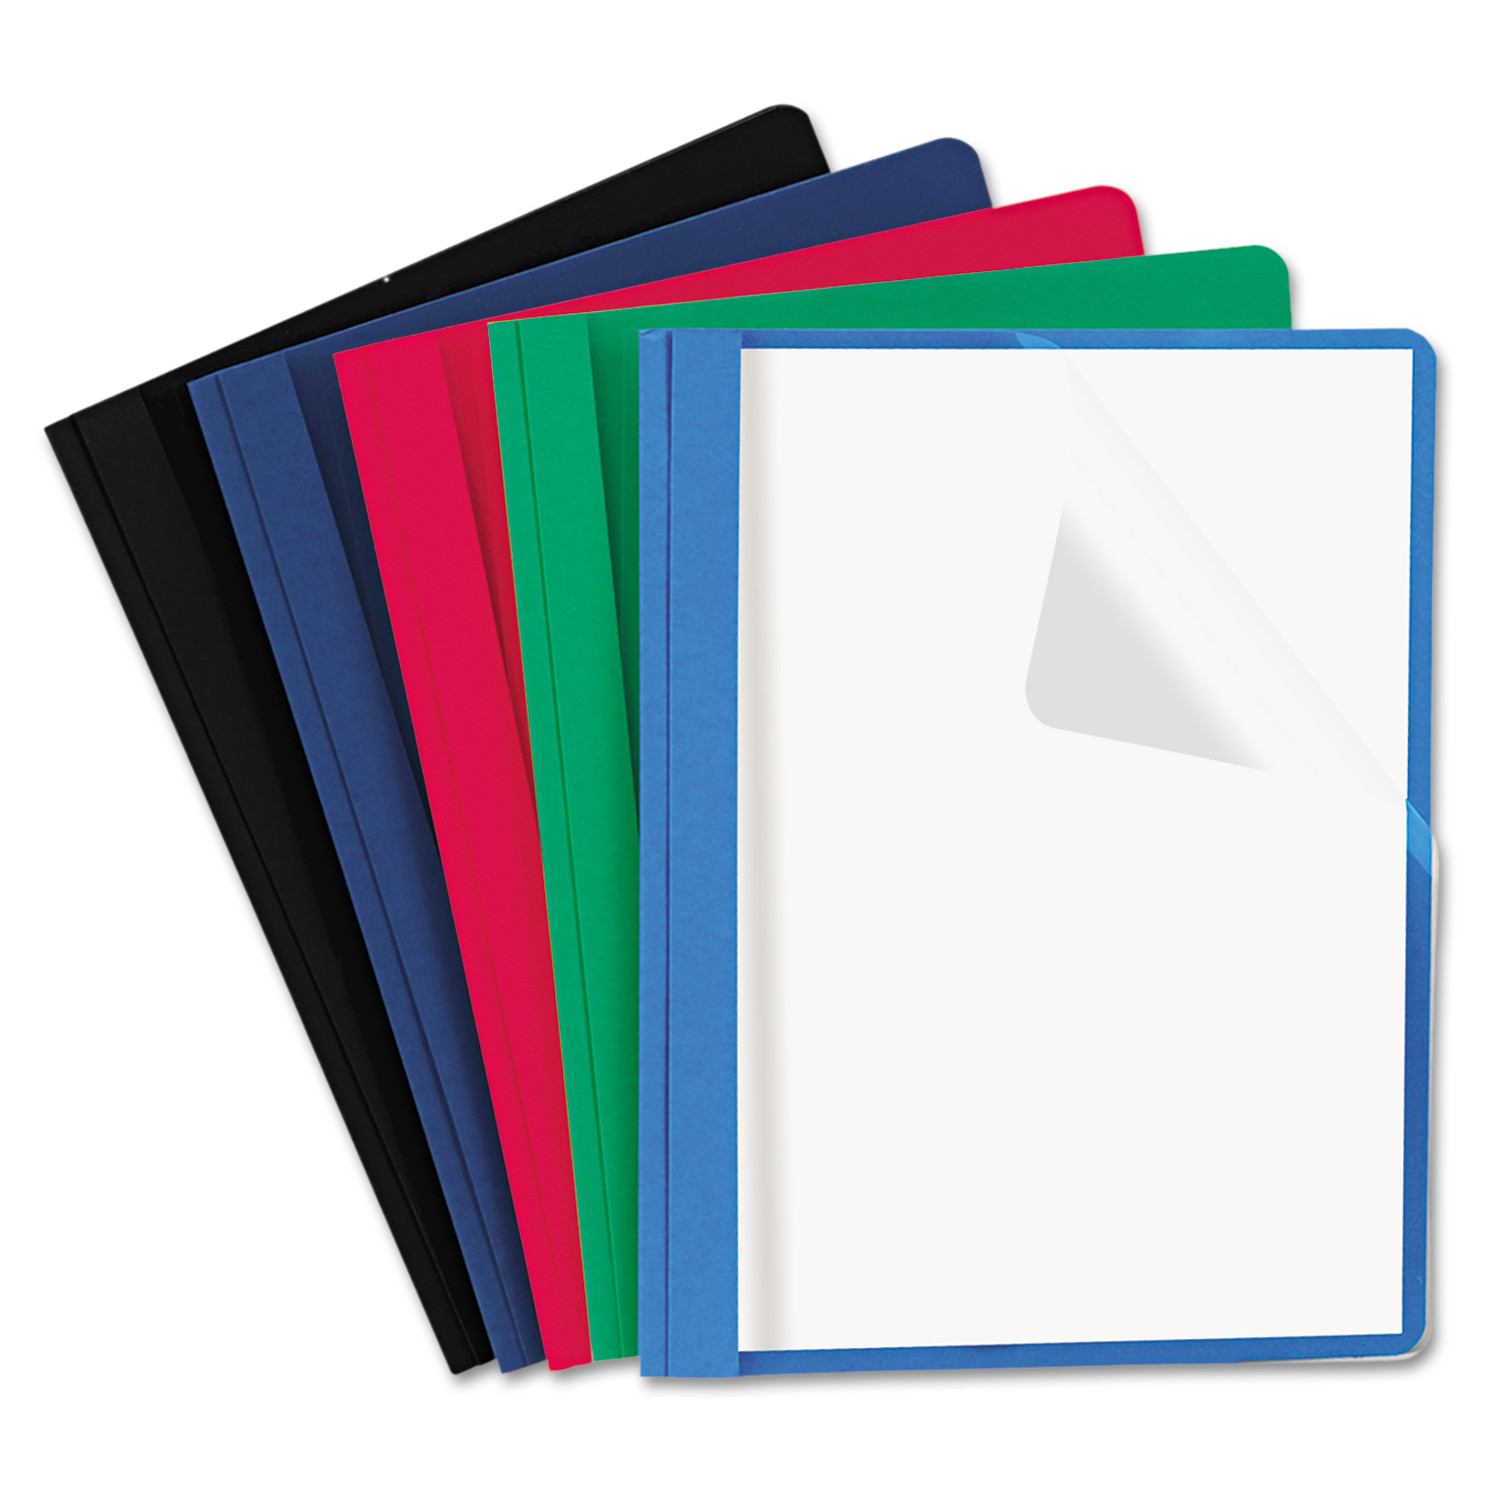 Universal Clear Front Report Cover, Tang Fasteners, Letter Size, Assorted Colors, 25/Box -UNV57119